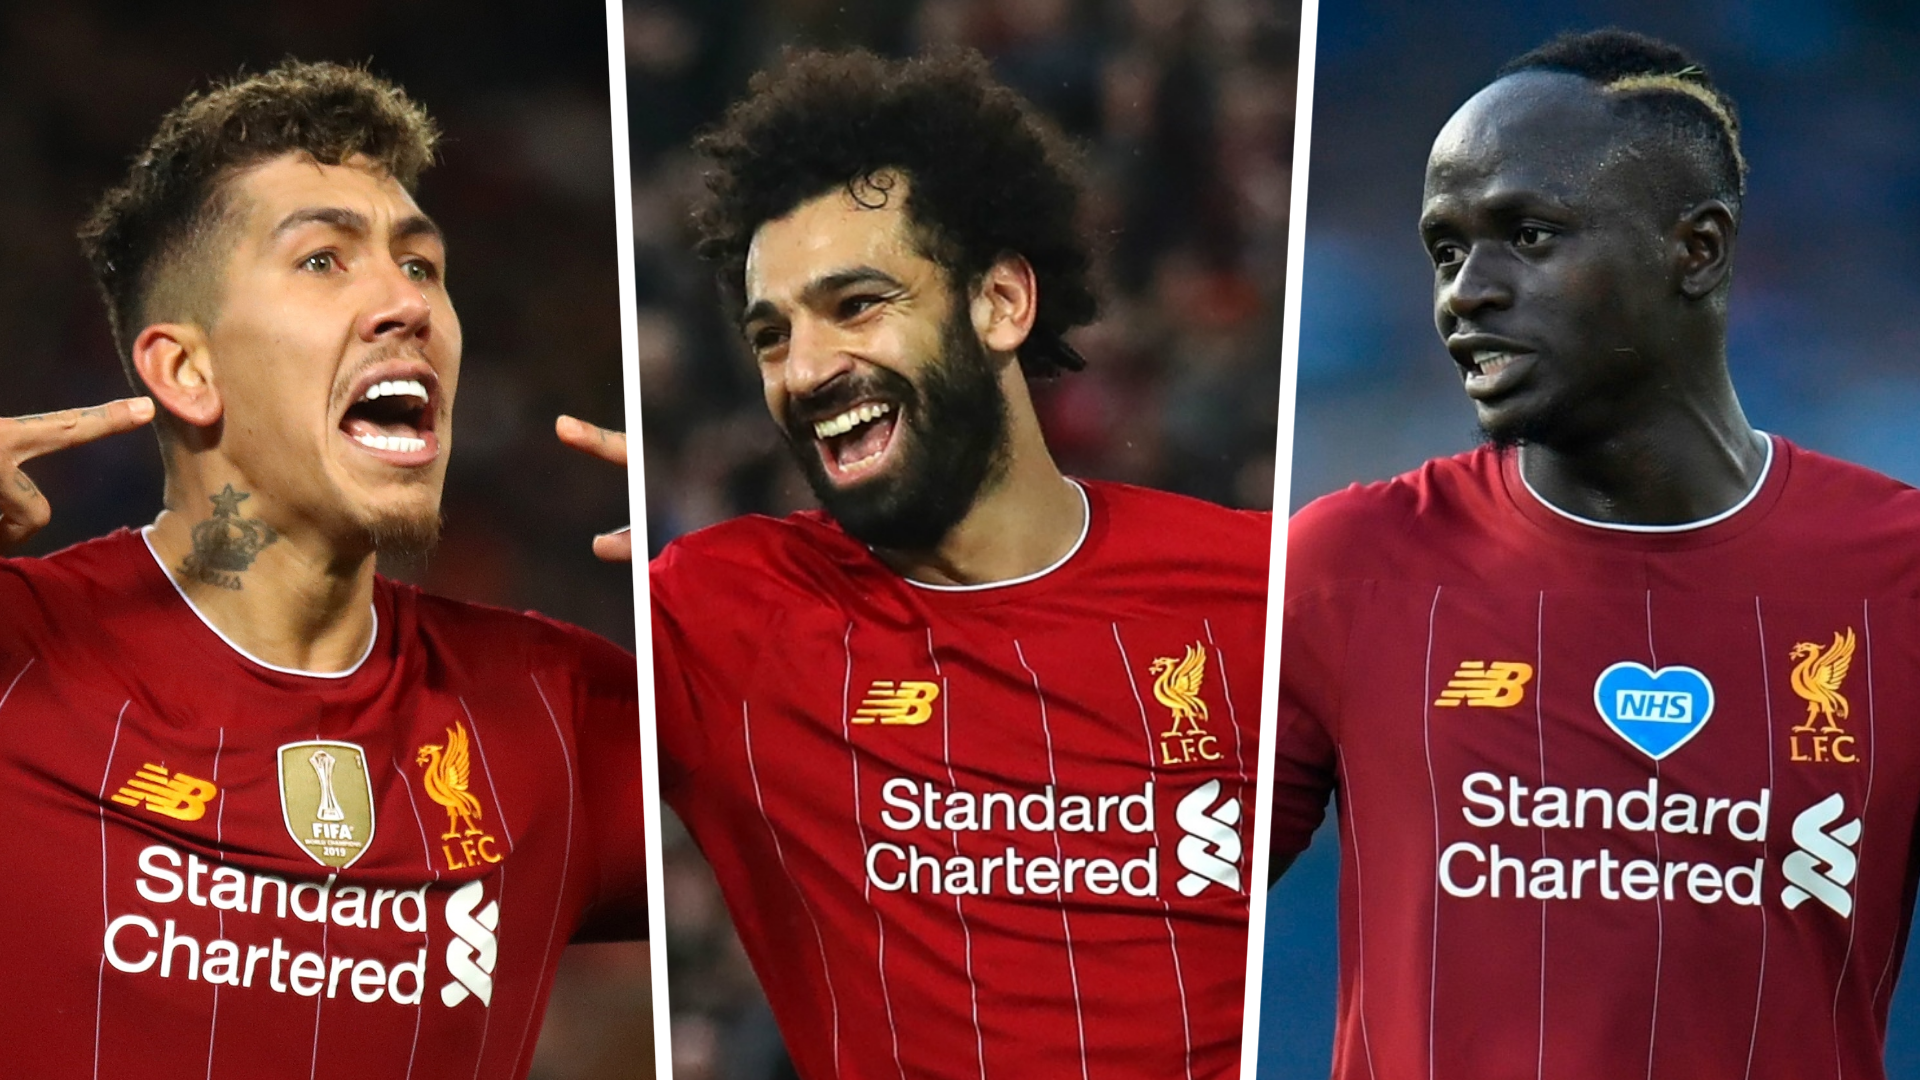 Mane becomes biggest Crystal Palace slayer as Salah & Firmino continue fine partnership